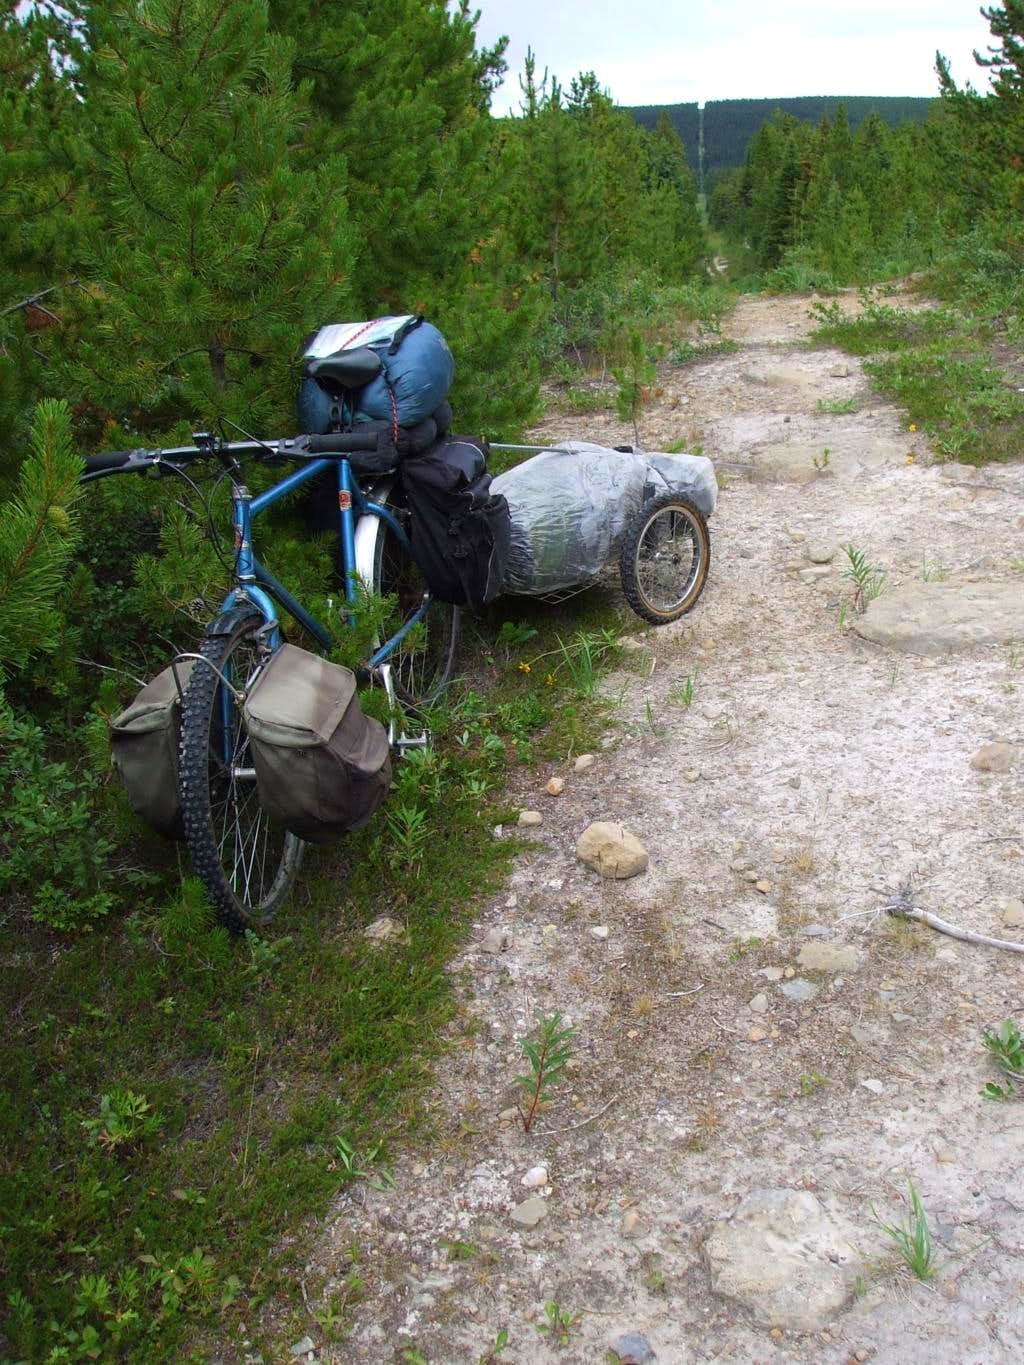 Bicycle and trailer on cutline